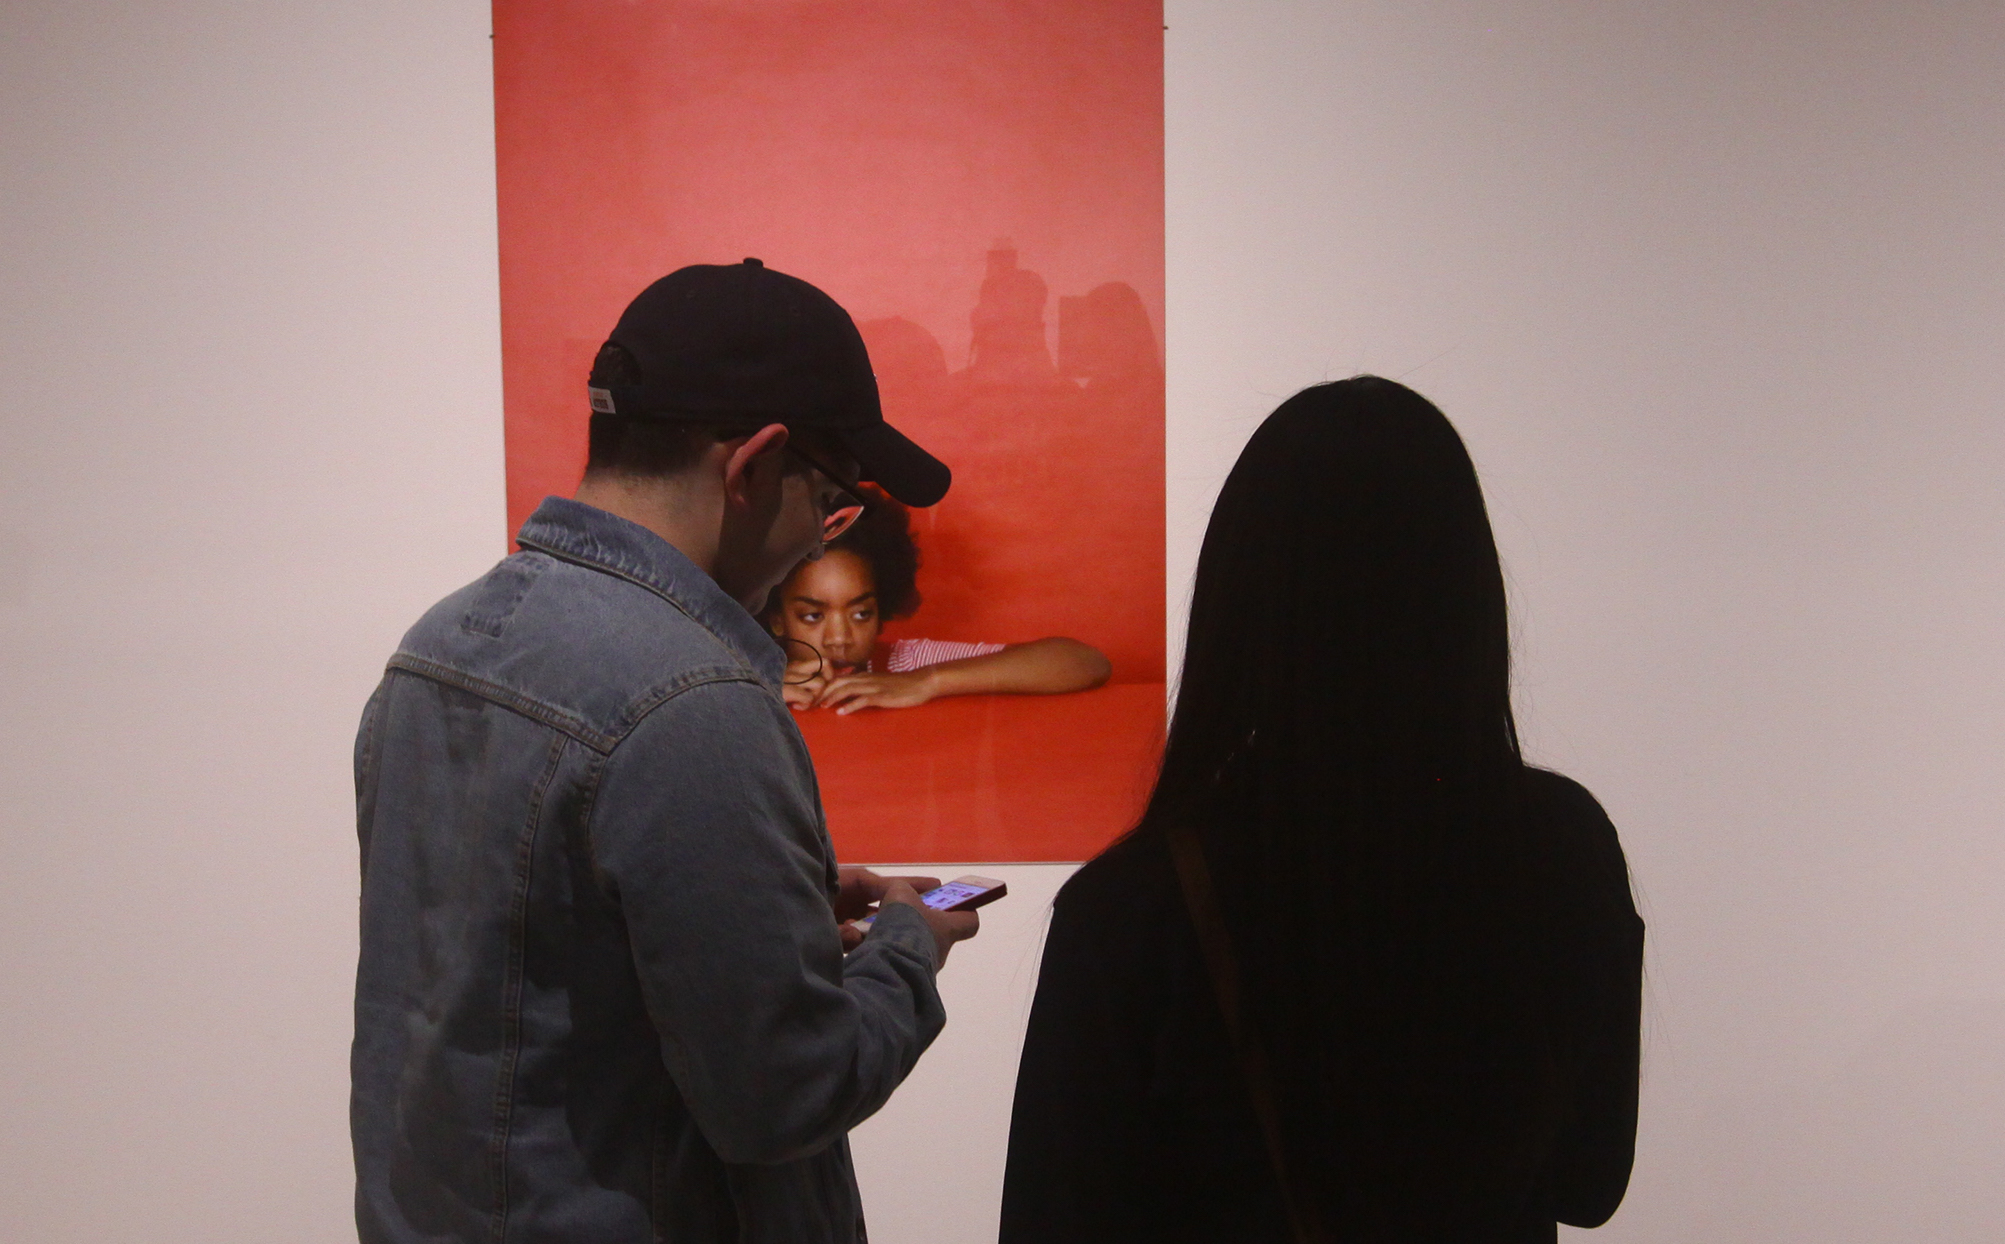 Teen Council Origins Of The Self Exhibition Opening, 2017. Photo by Martin Yaptangco.